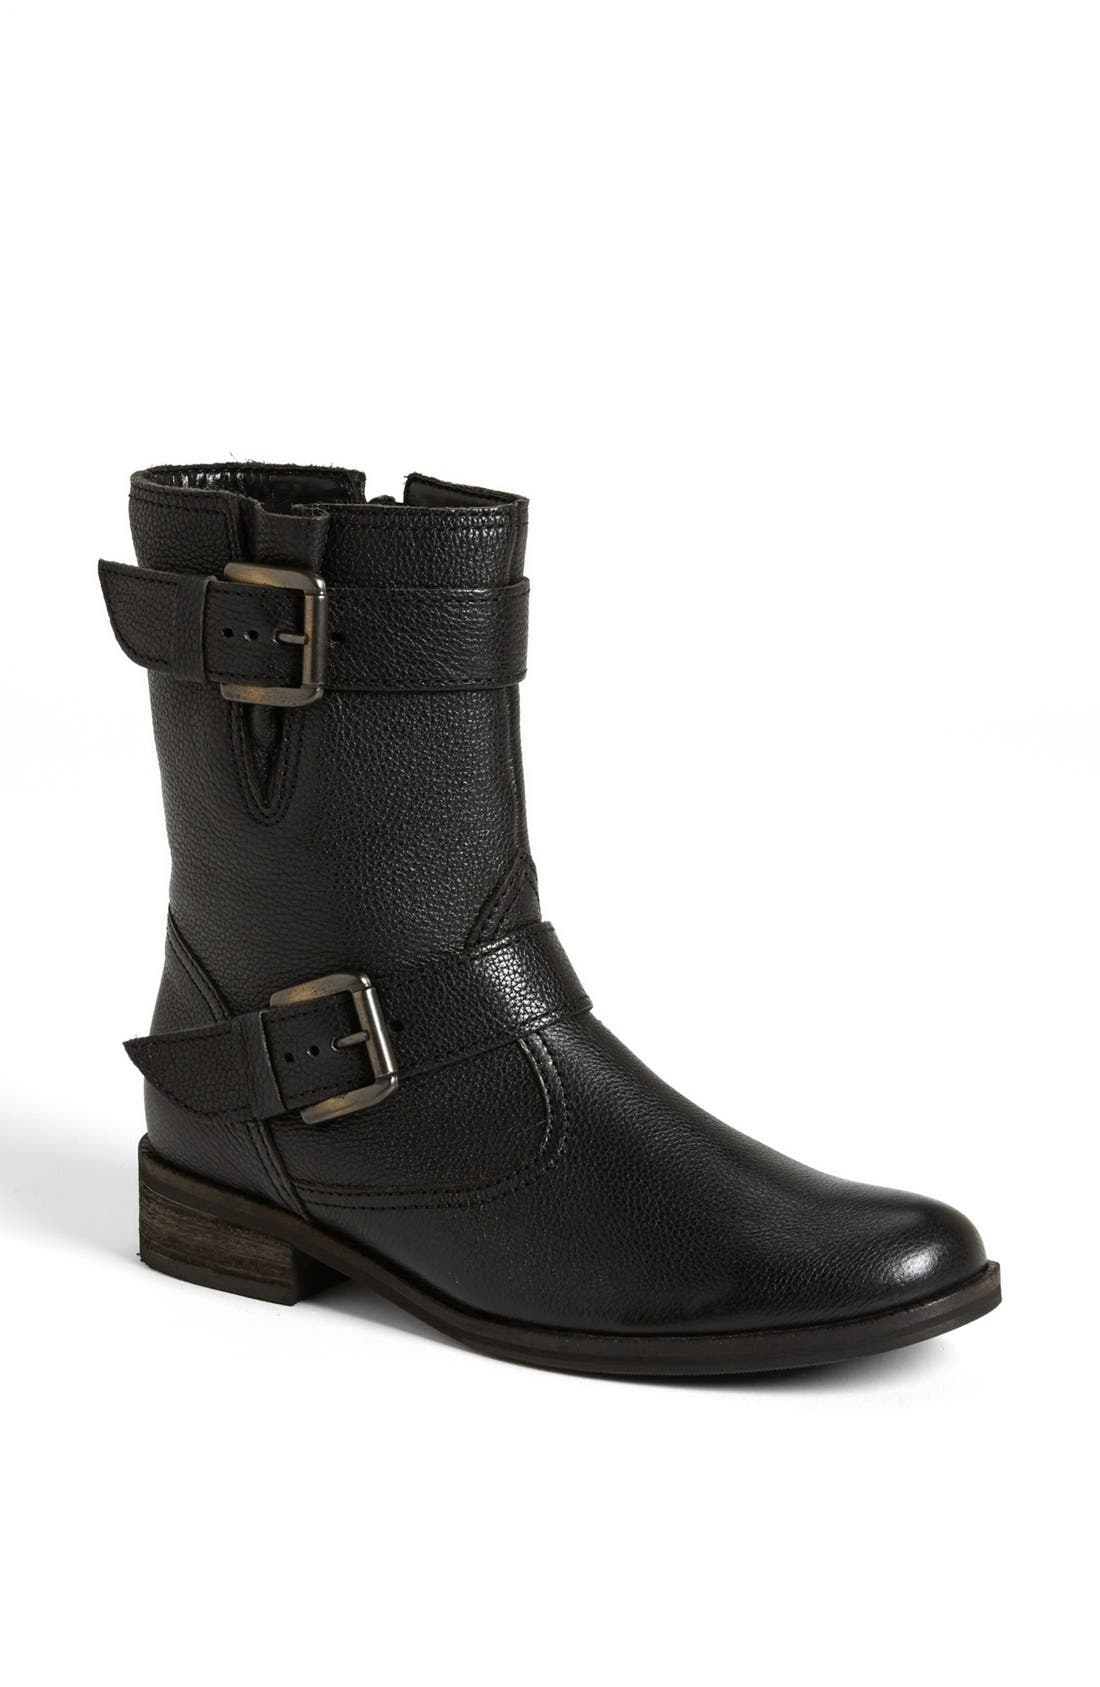 Alternate Image 1 Selected - Gabor Buckle Boot